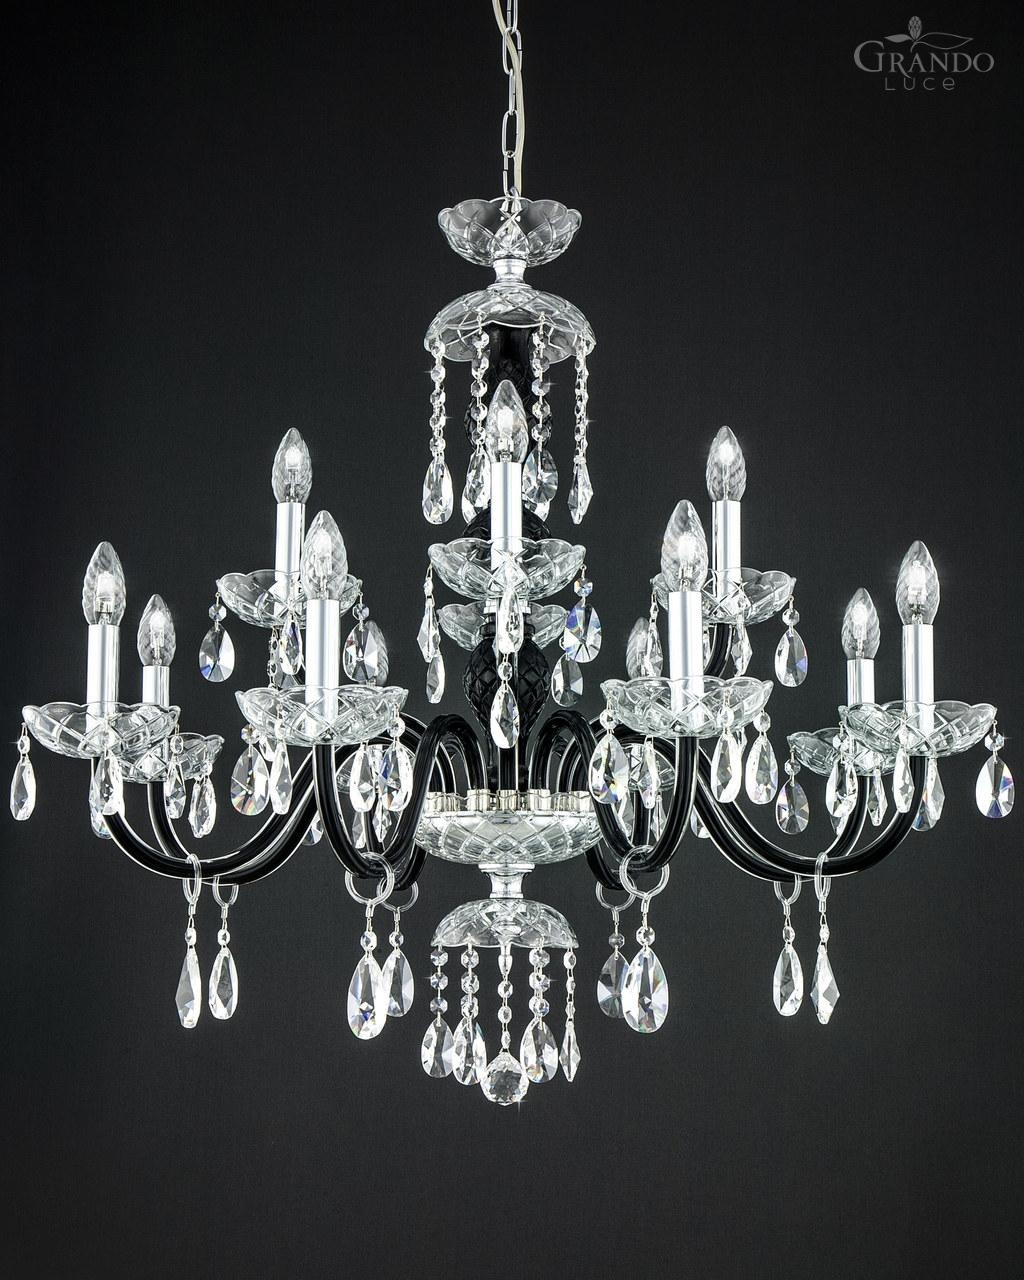 10484 Ch Chrome Black Crystal Chandelier Grandoluce With Chrome And Crystal Chandeliers (Image 1 of 25)